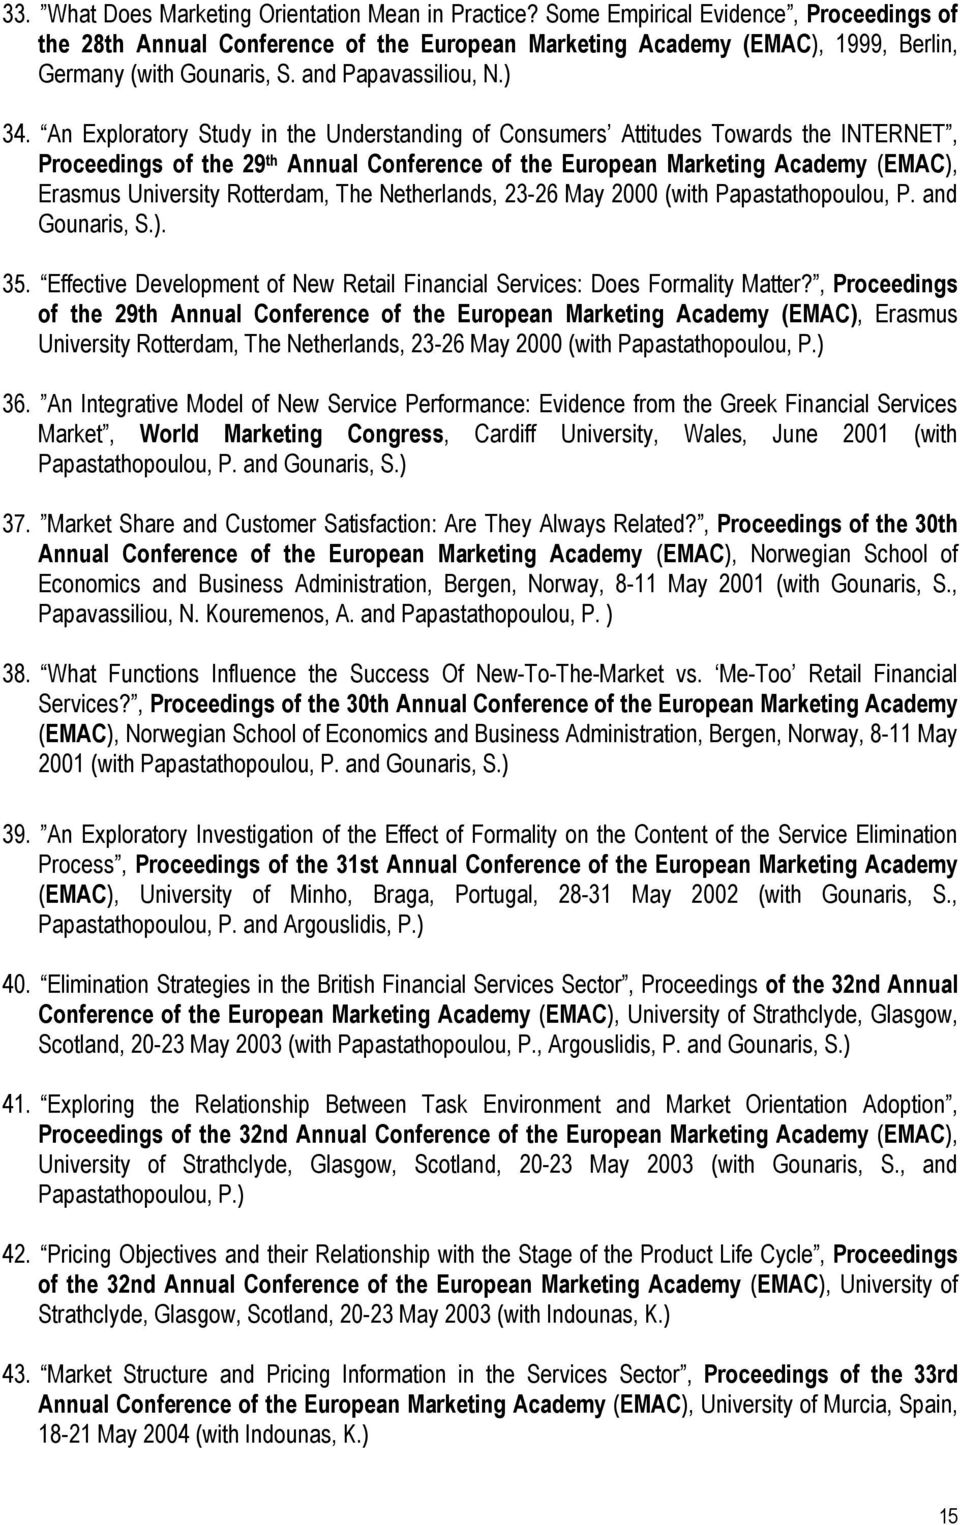 An Exploratory Study in the Understanding of Consumers Attitudes Towards the INTERNET, Proceedings of the 29 th Annual Conference of the European Marketing Academy (EMAC), Erasmus University